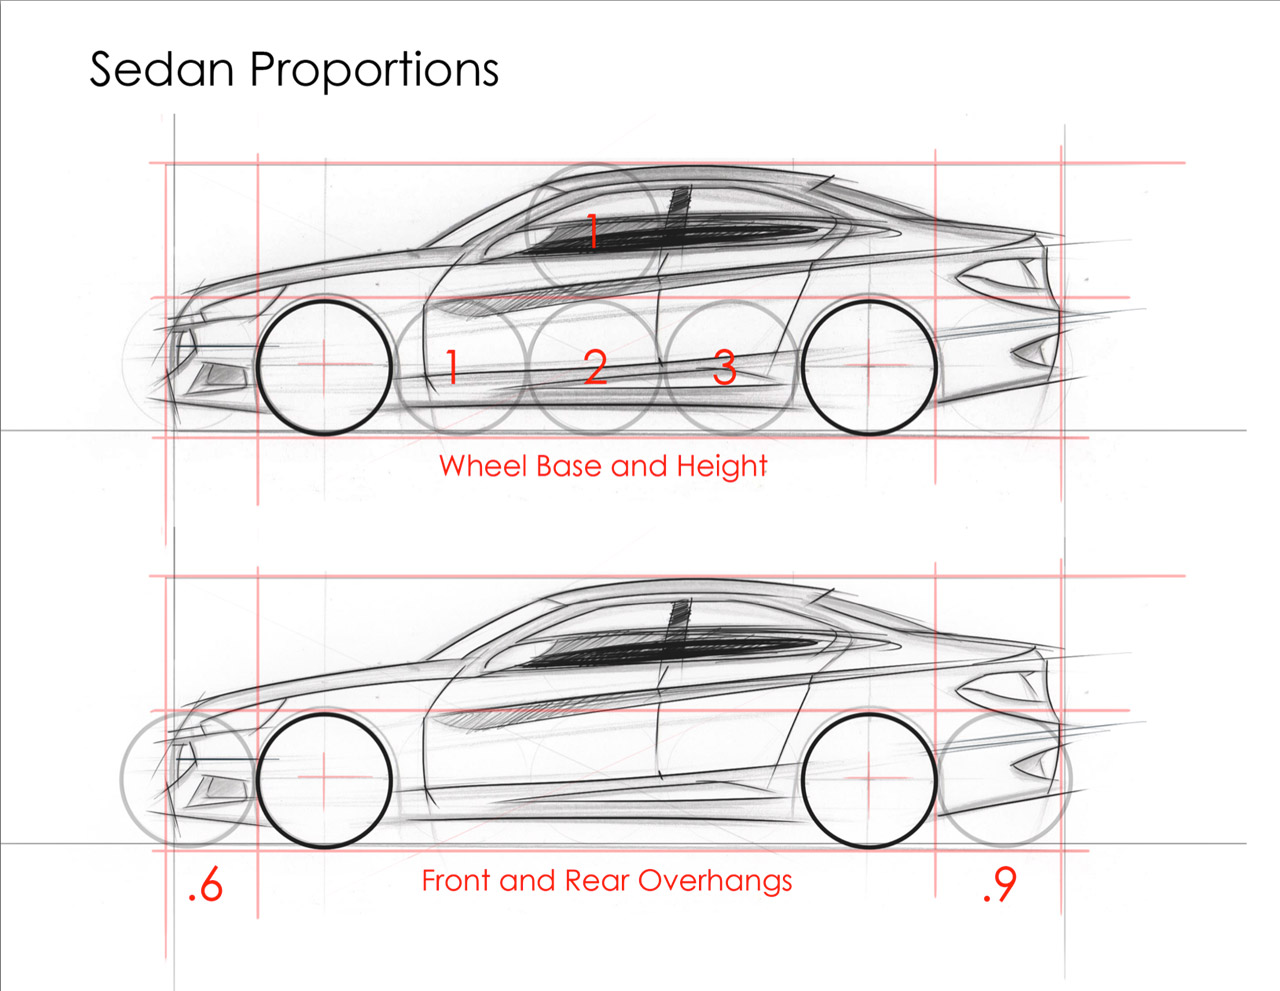 Drawn vehicle car design Ideas To Proportions 25+ CarsCar